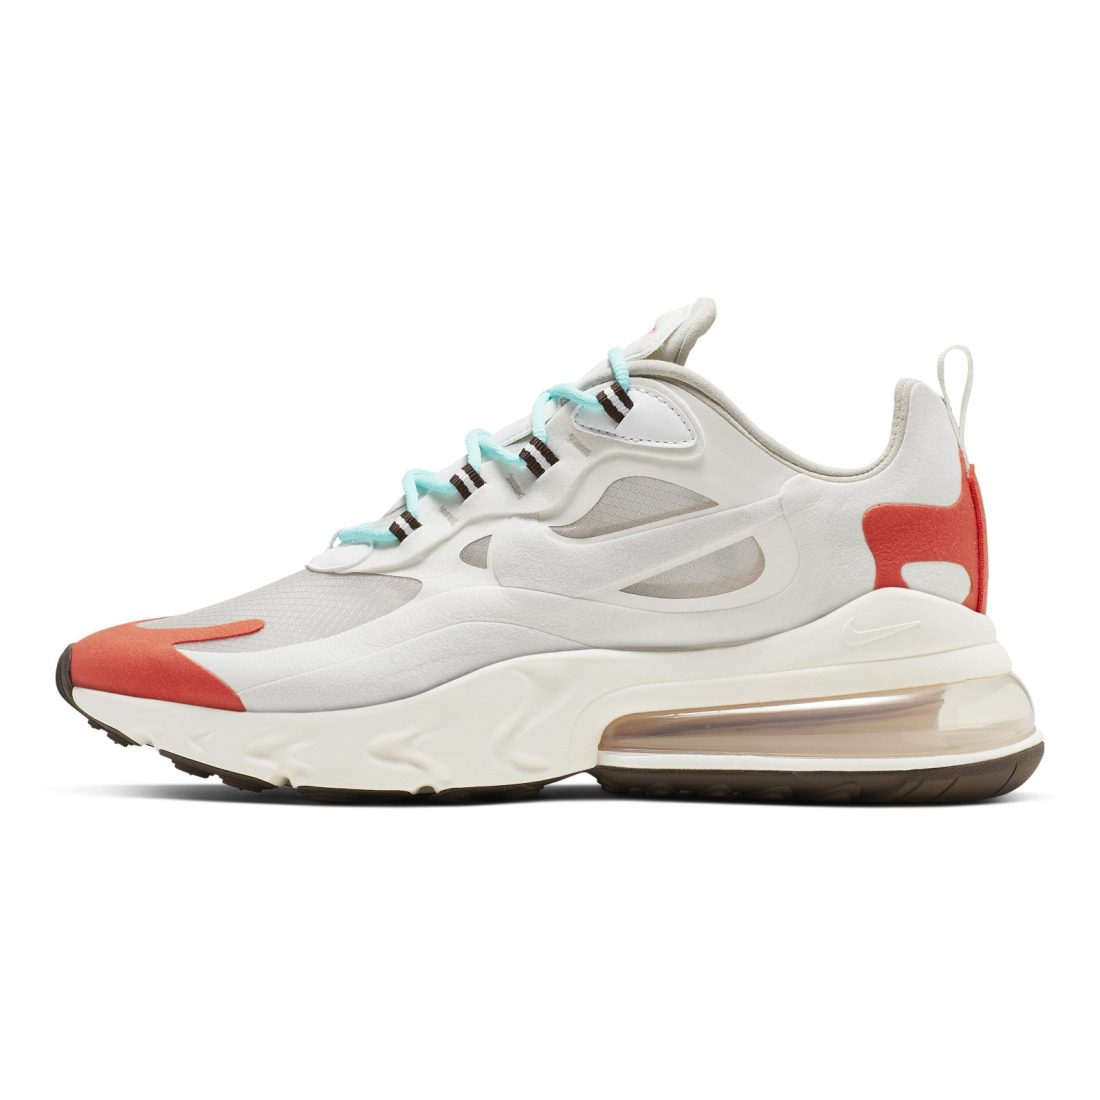 NSW Nike Air Max 270 React